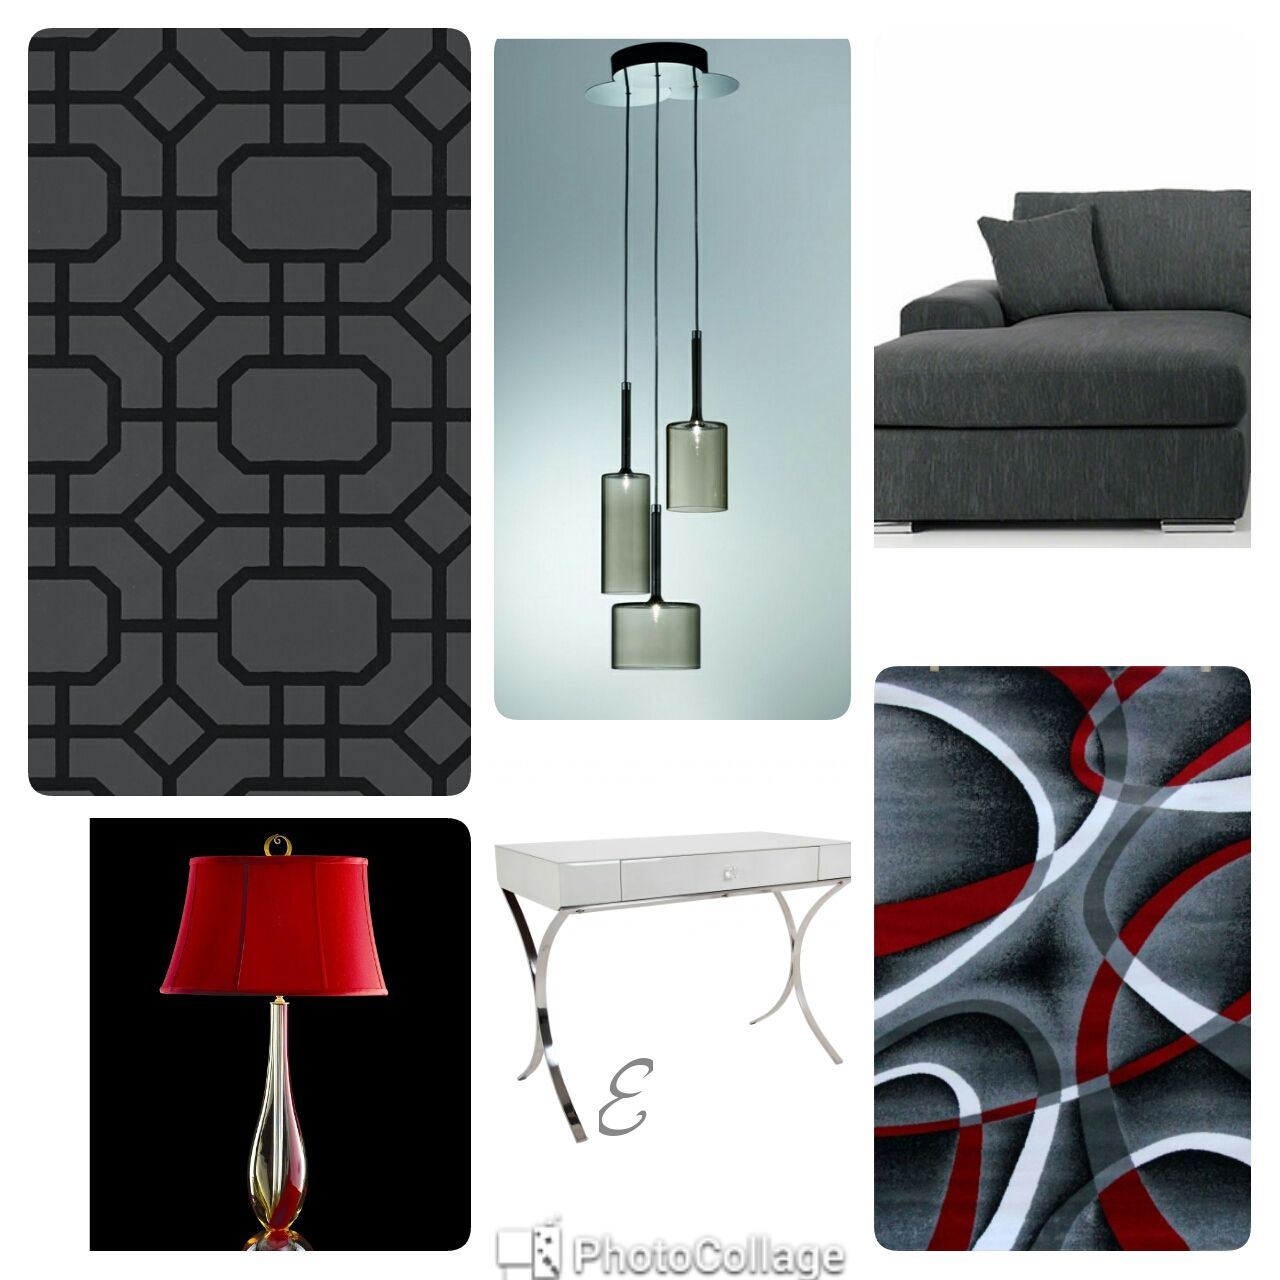 Modern living room design mood board colours black red grey white modern living room design mood board colours black red grey white charcoal red side geotapseo Image collections